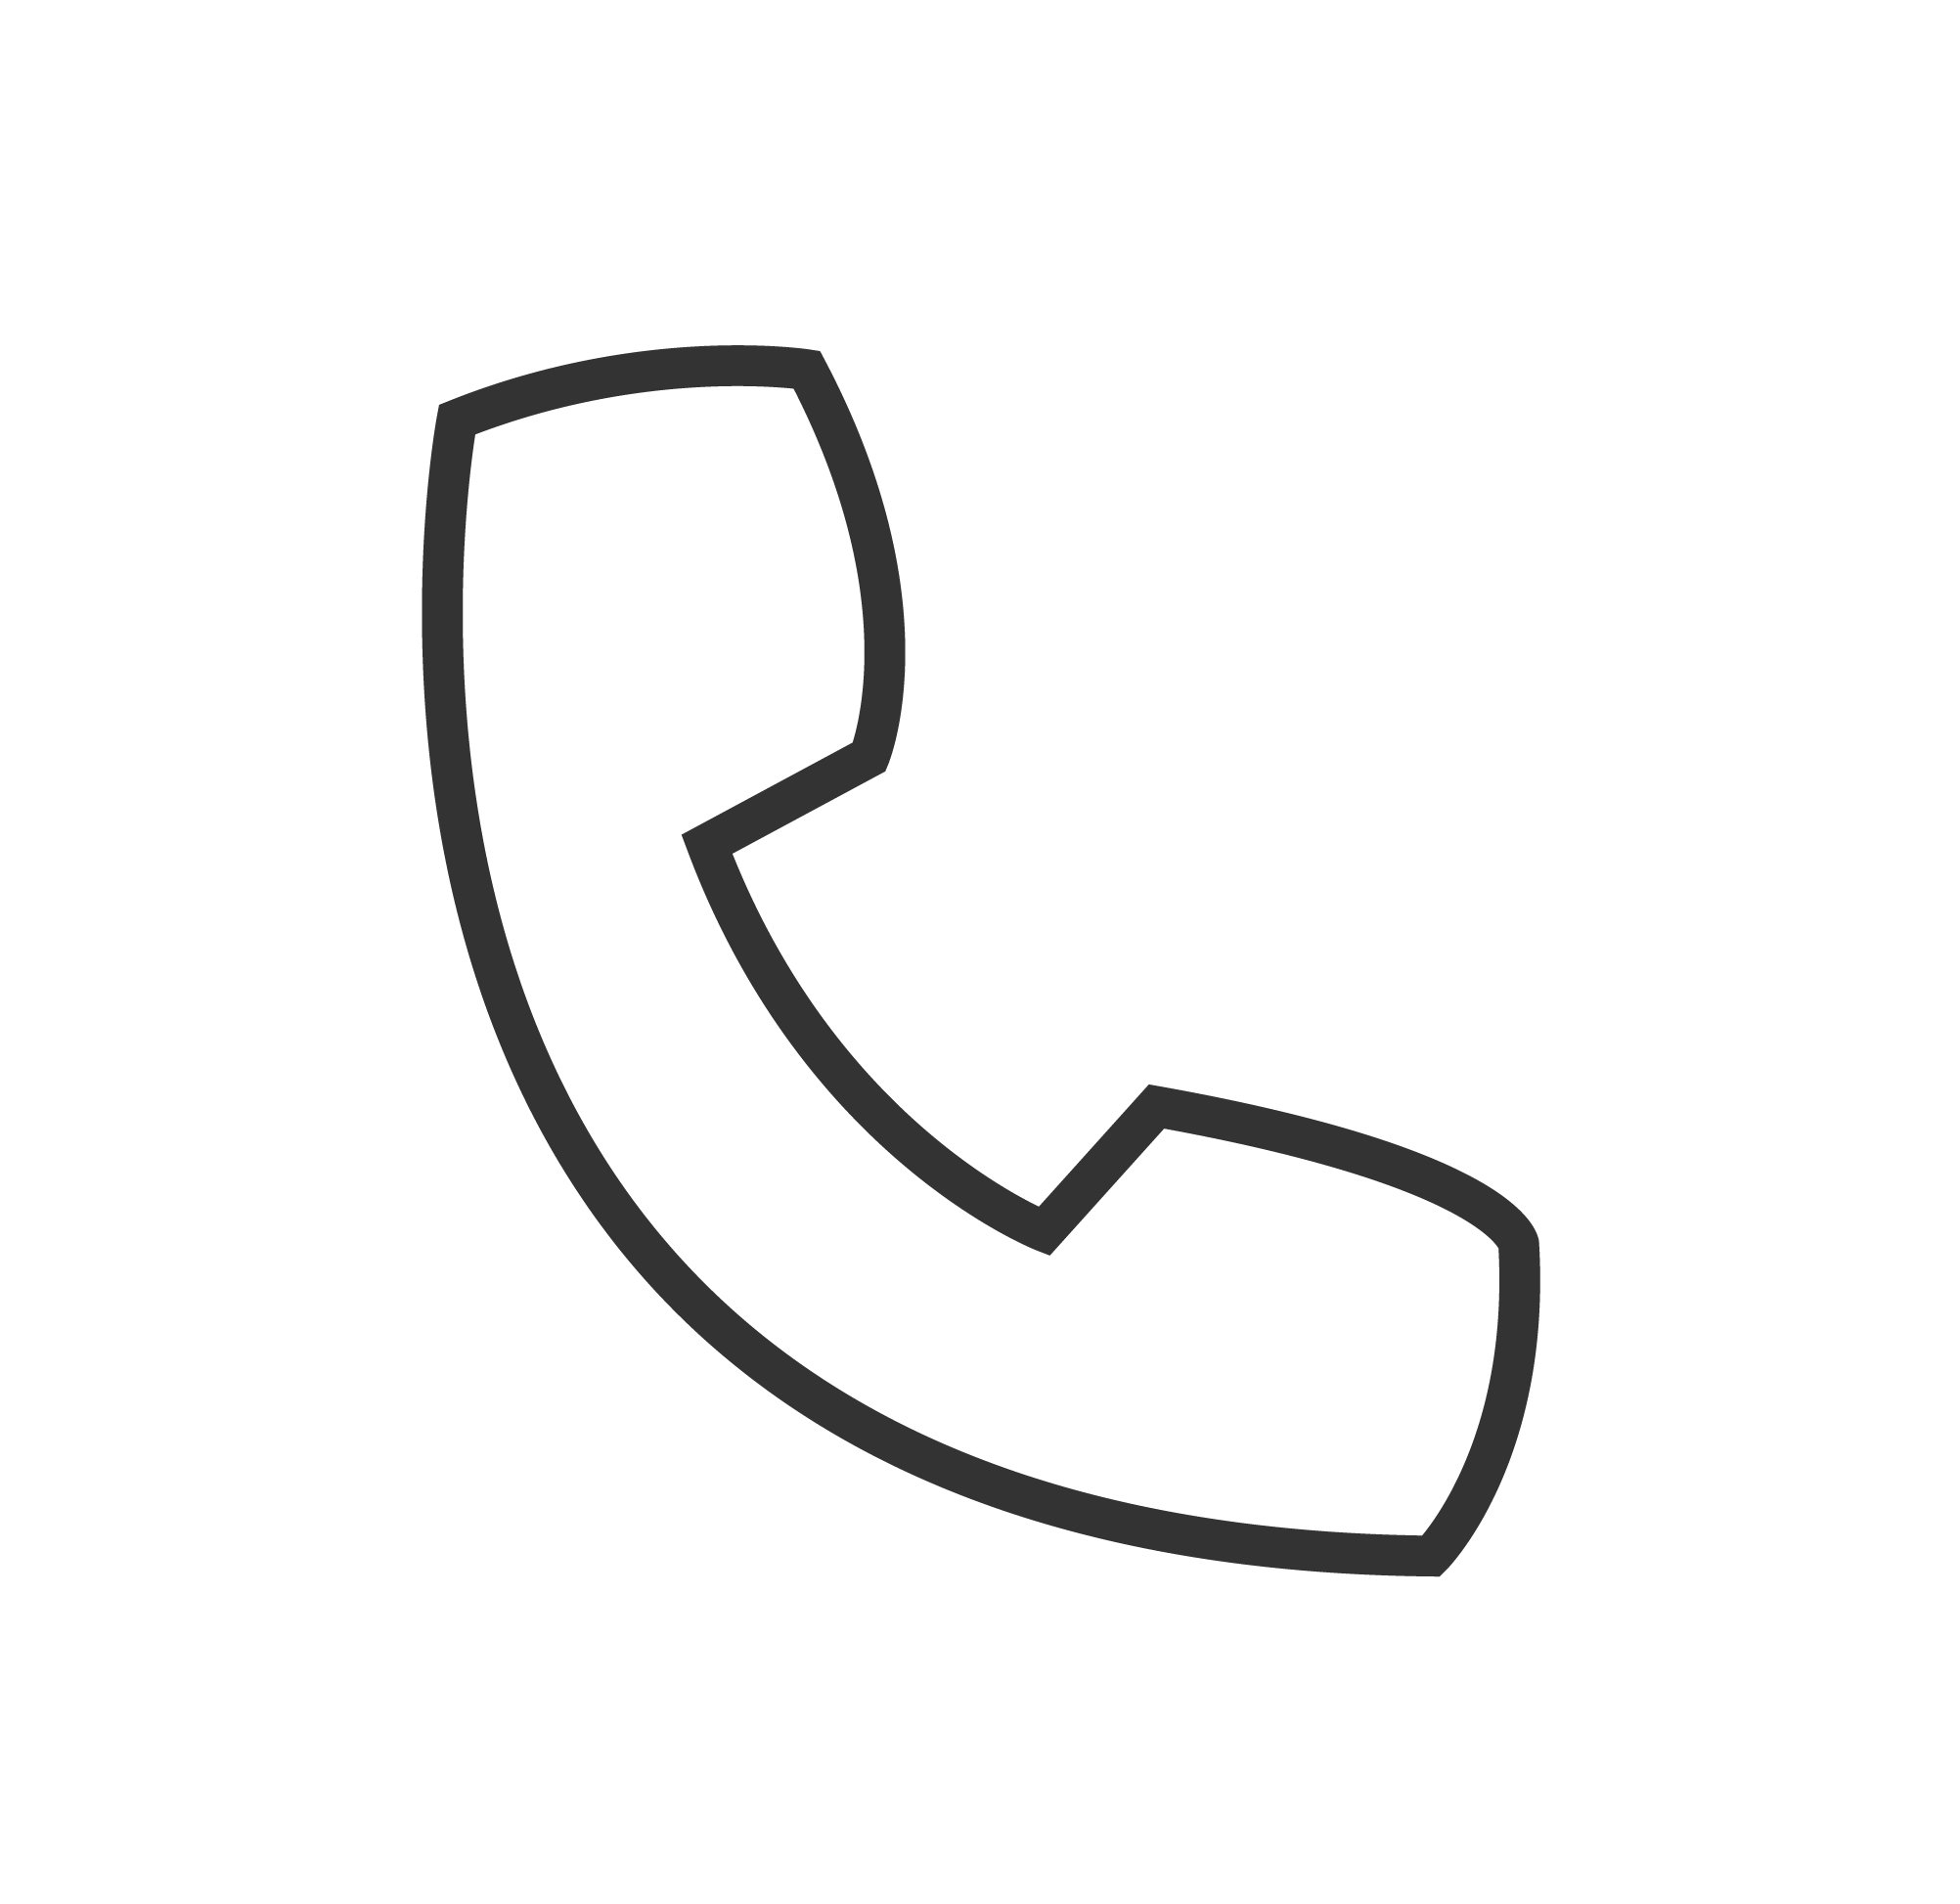 Phone-Icon-03.png